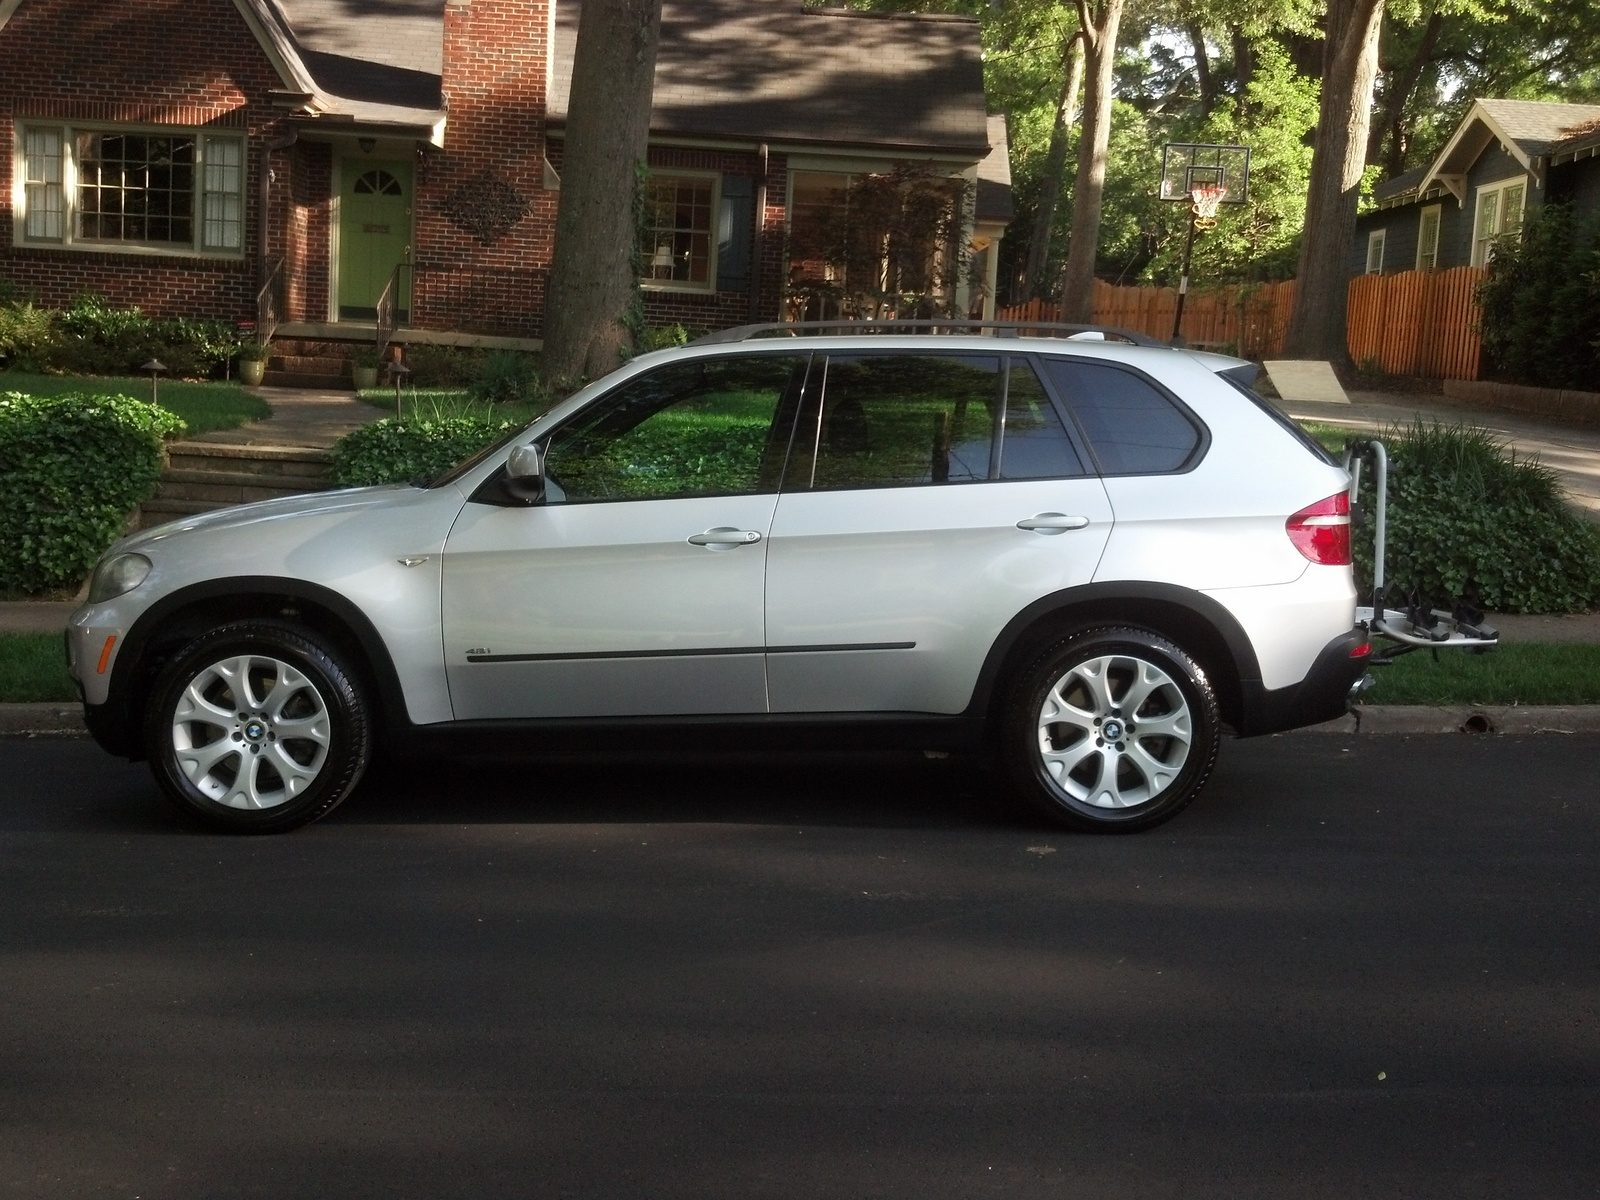 steer listings bmw fr used for in dubai years xdrive suv with warranty experience auto full luxury well sale new